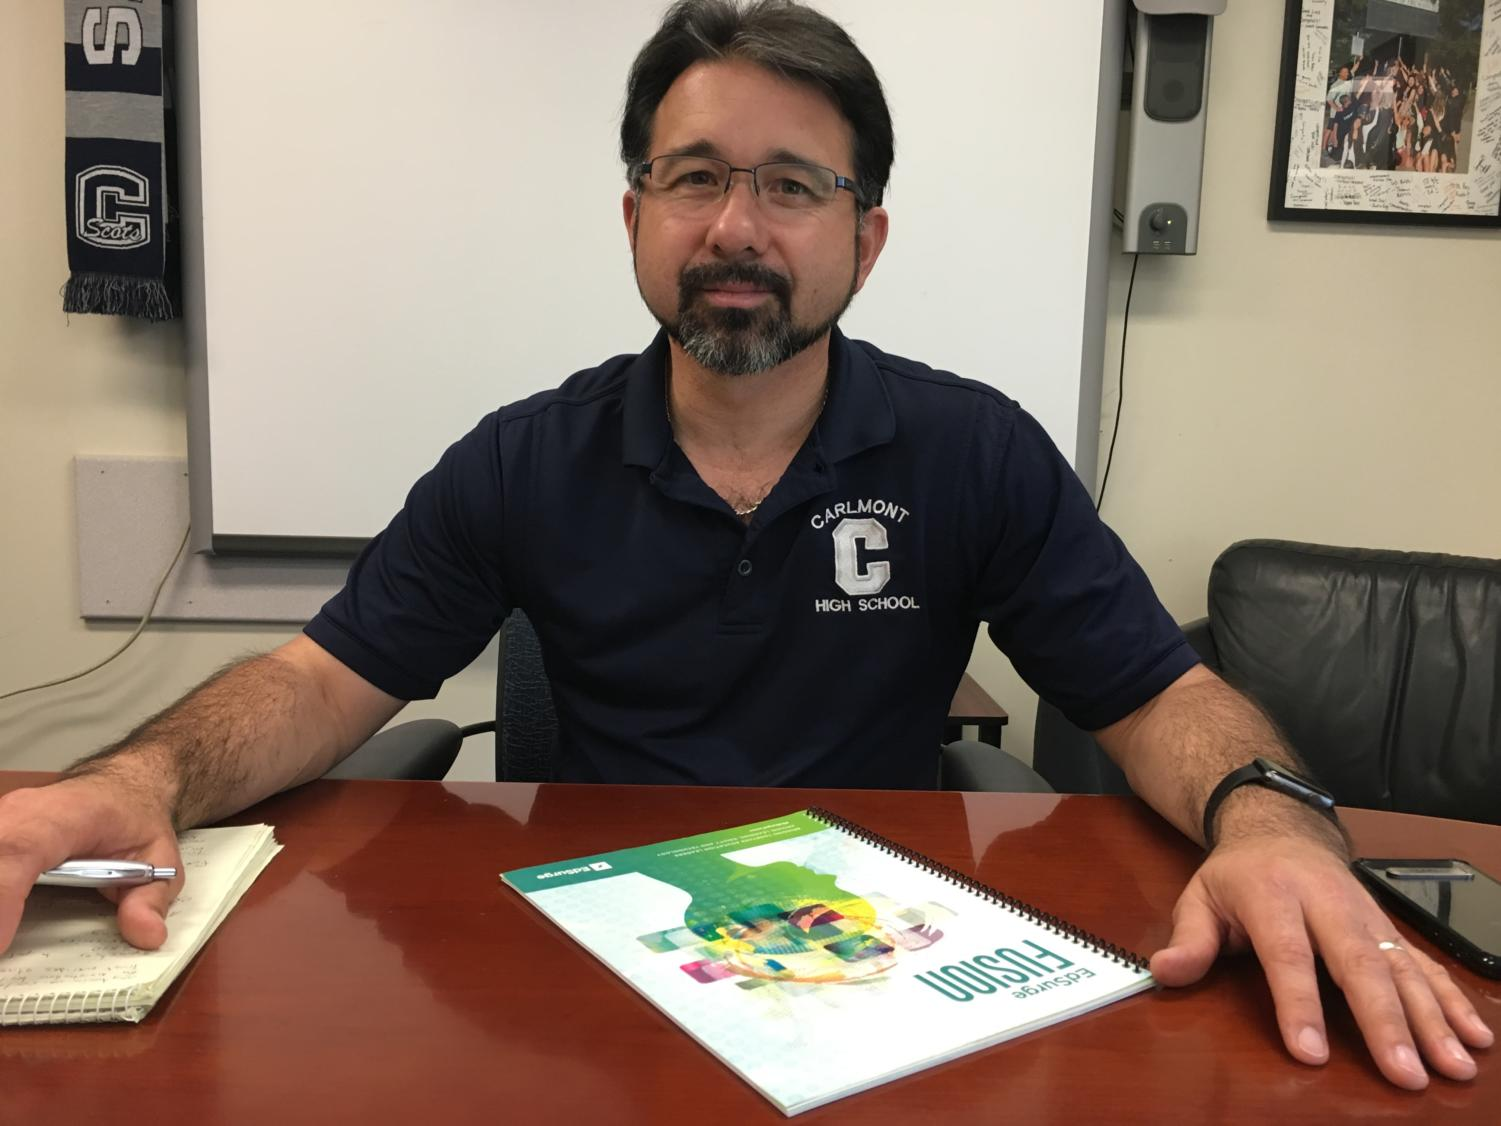 Principal Ralph Crame works to reduce student stress